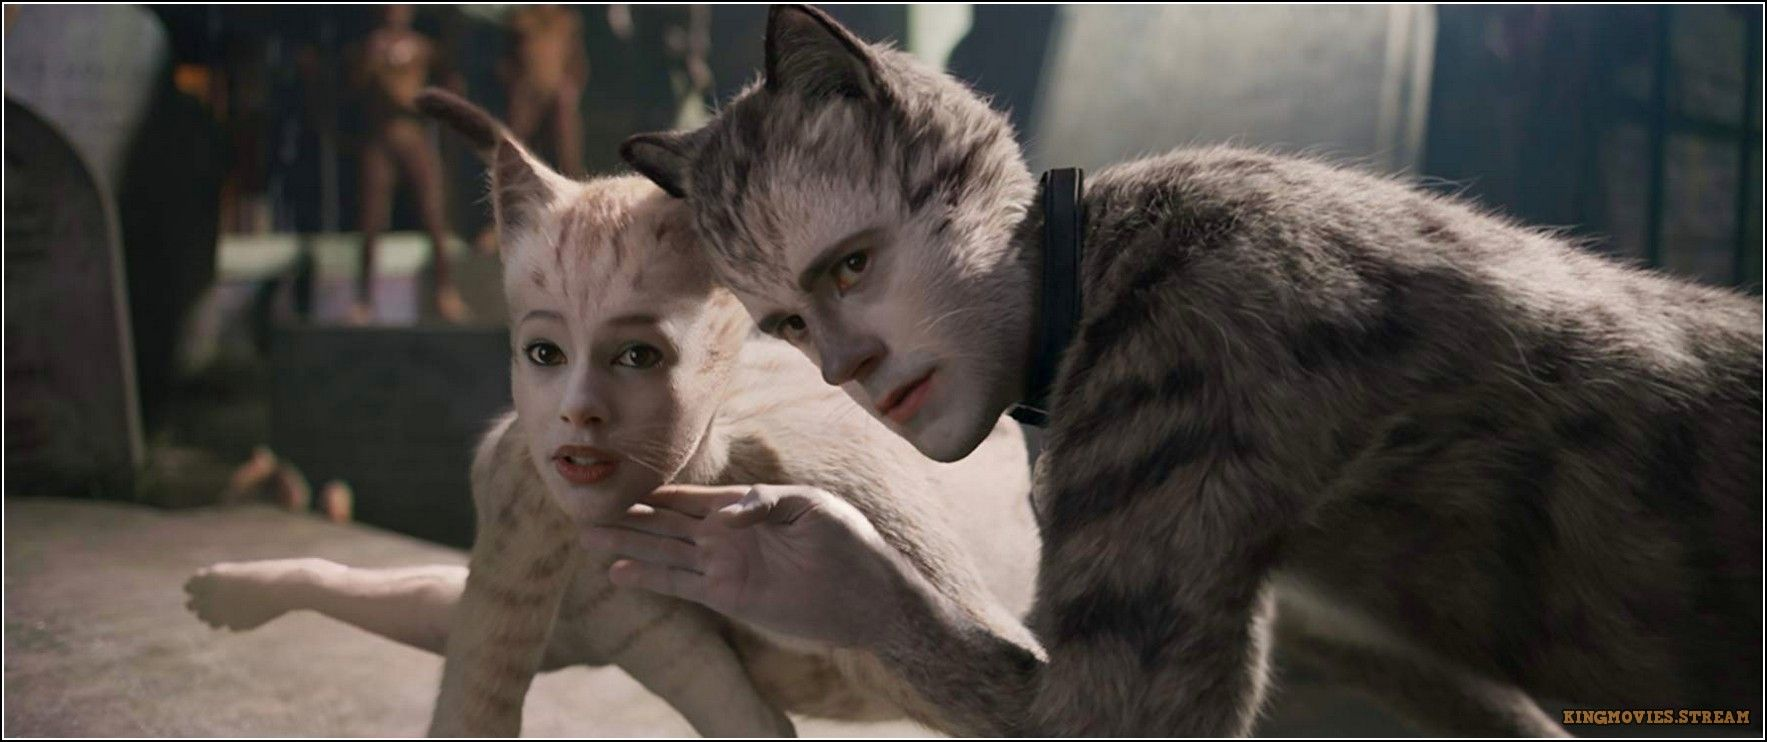 123movies Hd Watch Cats Online Cats Cat Online Movies